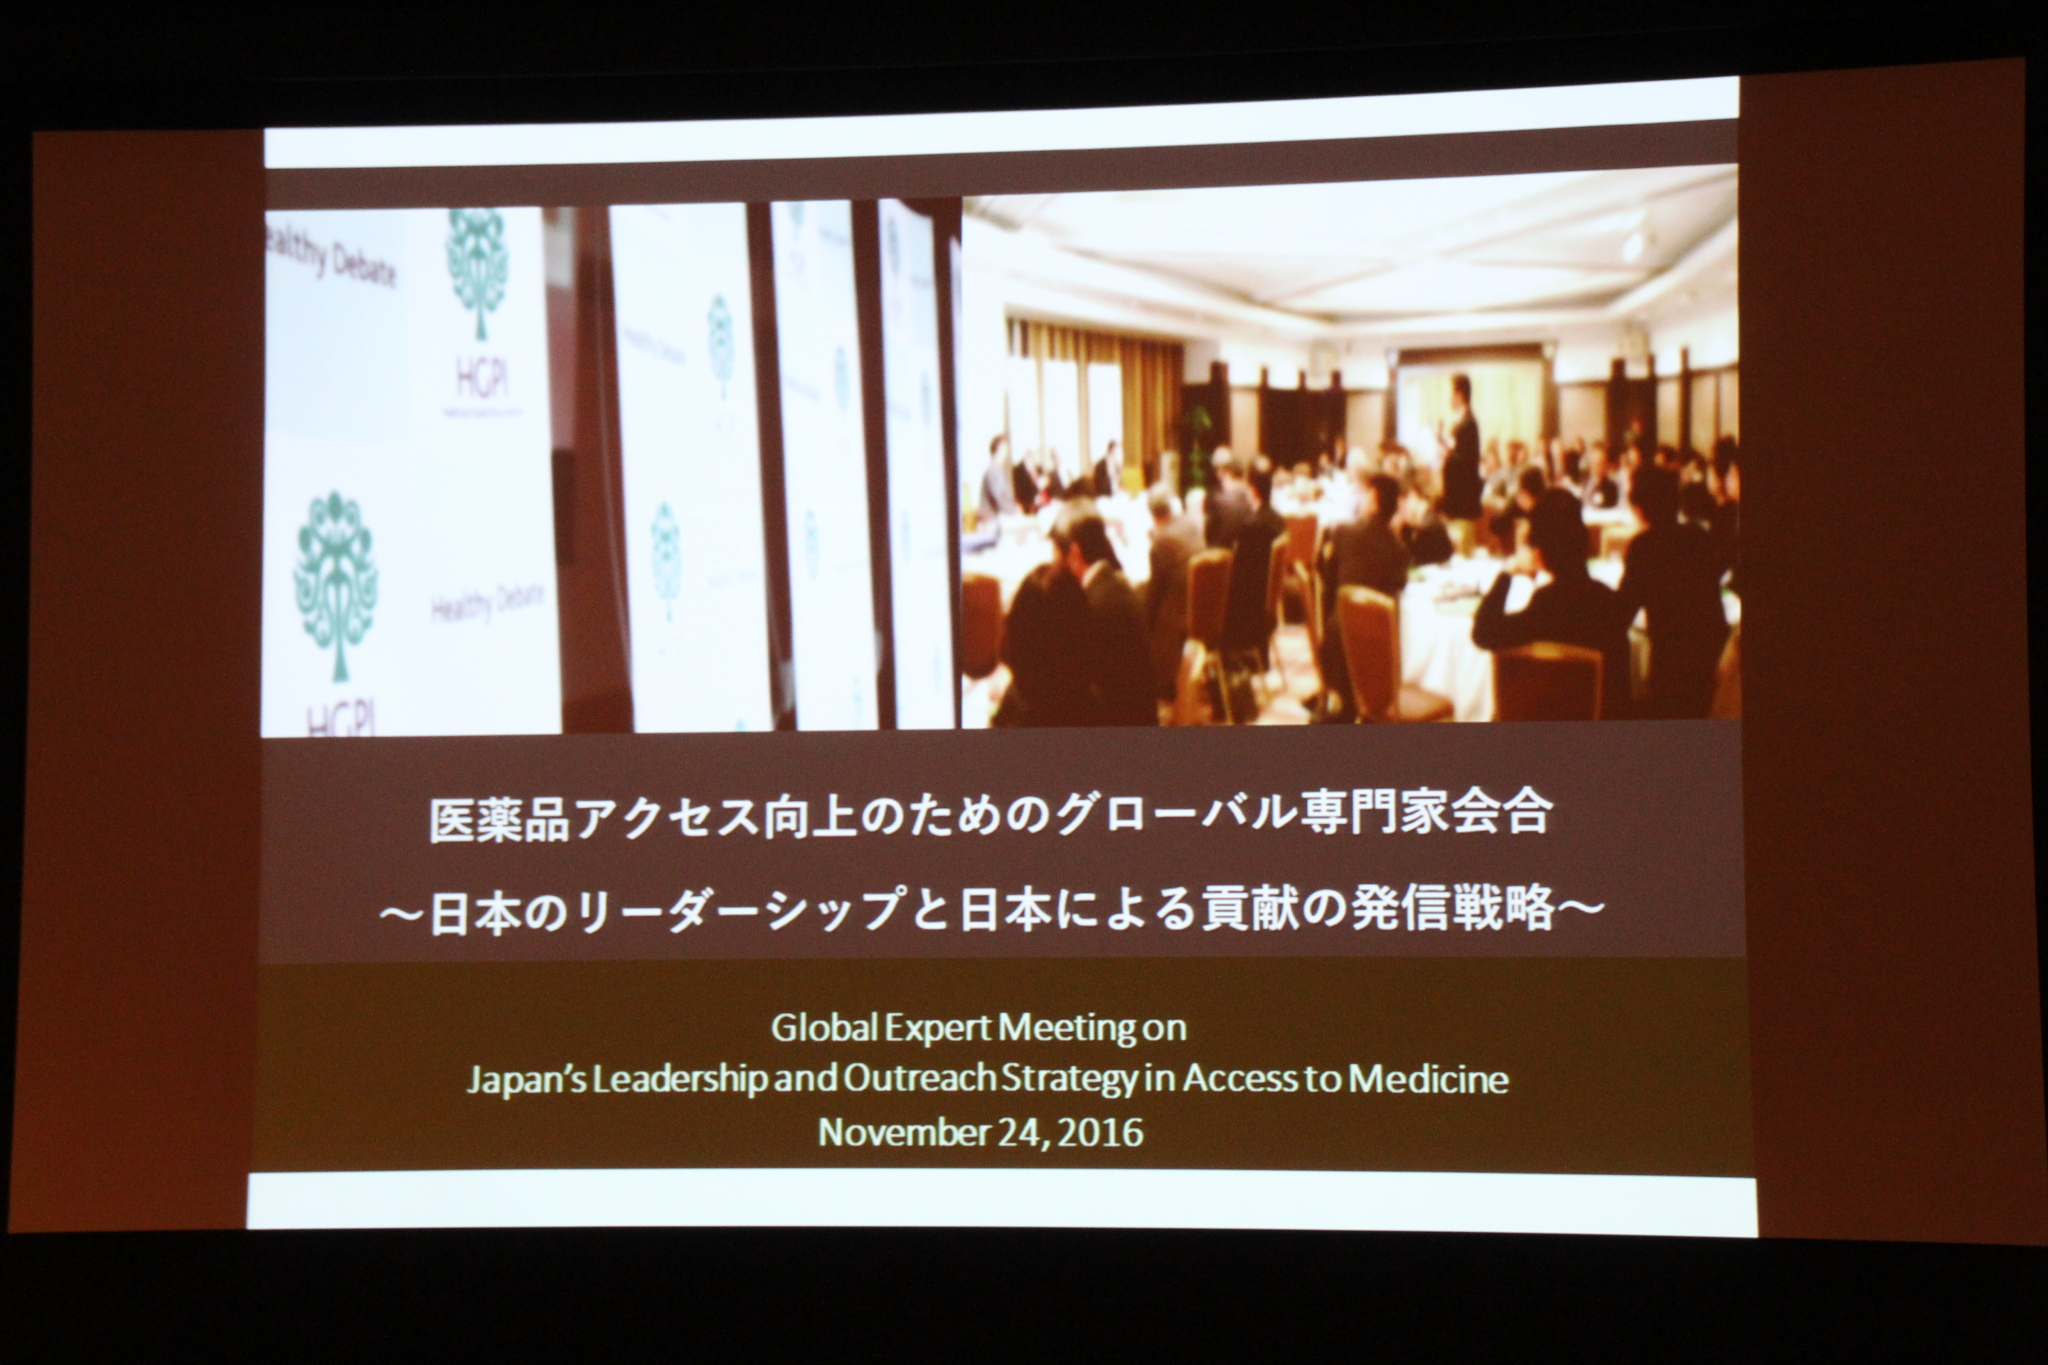 (Event Report) Global Expert Meeting on  Japan's Leadership and Outreach Strategy in Access to Medicine (Nov. 24, 2016)